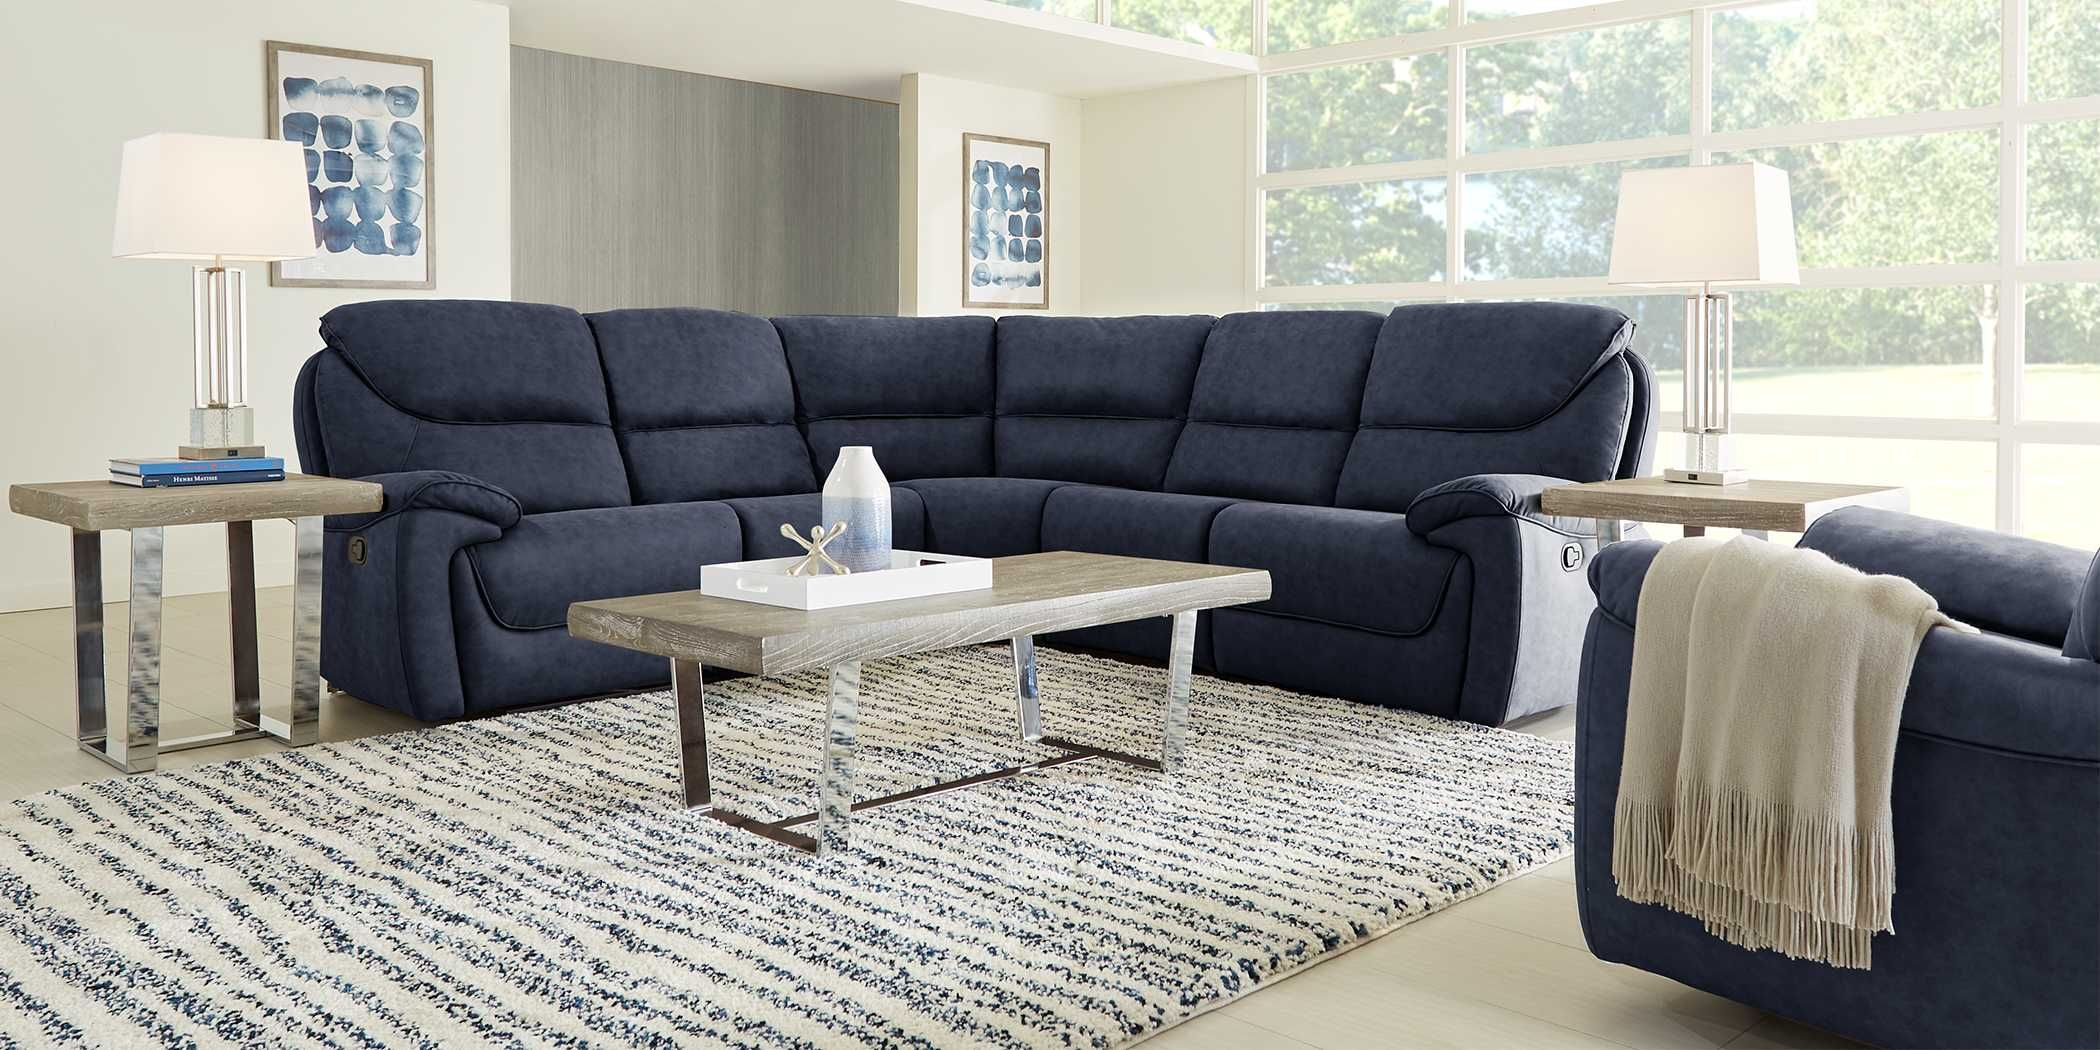 South Brook Blue 5 Pc Reclining Sectional Rooms To Go Reclining Sectional Comfortable Sectional Blue Reclining Sofa